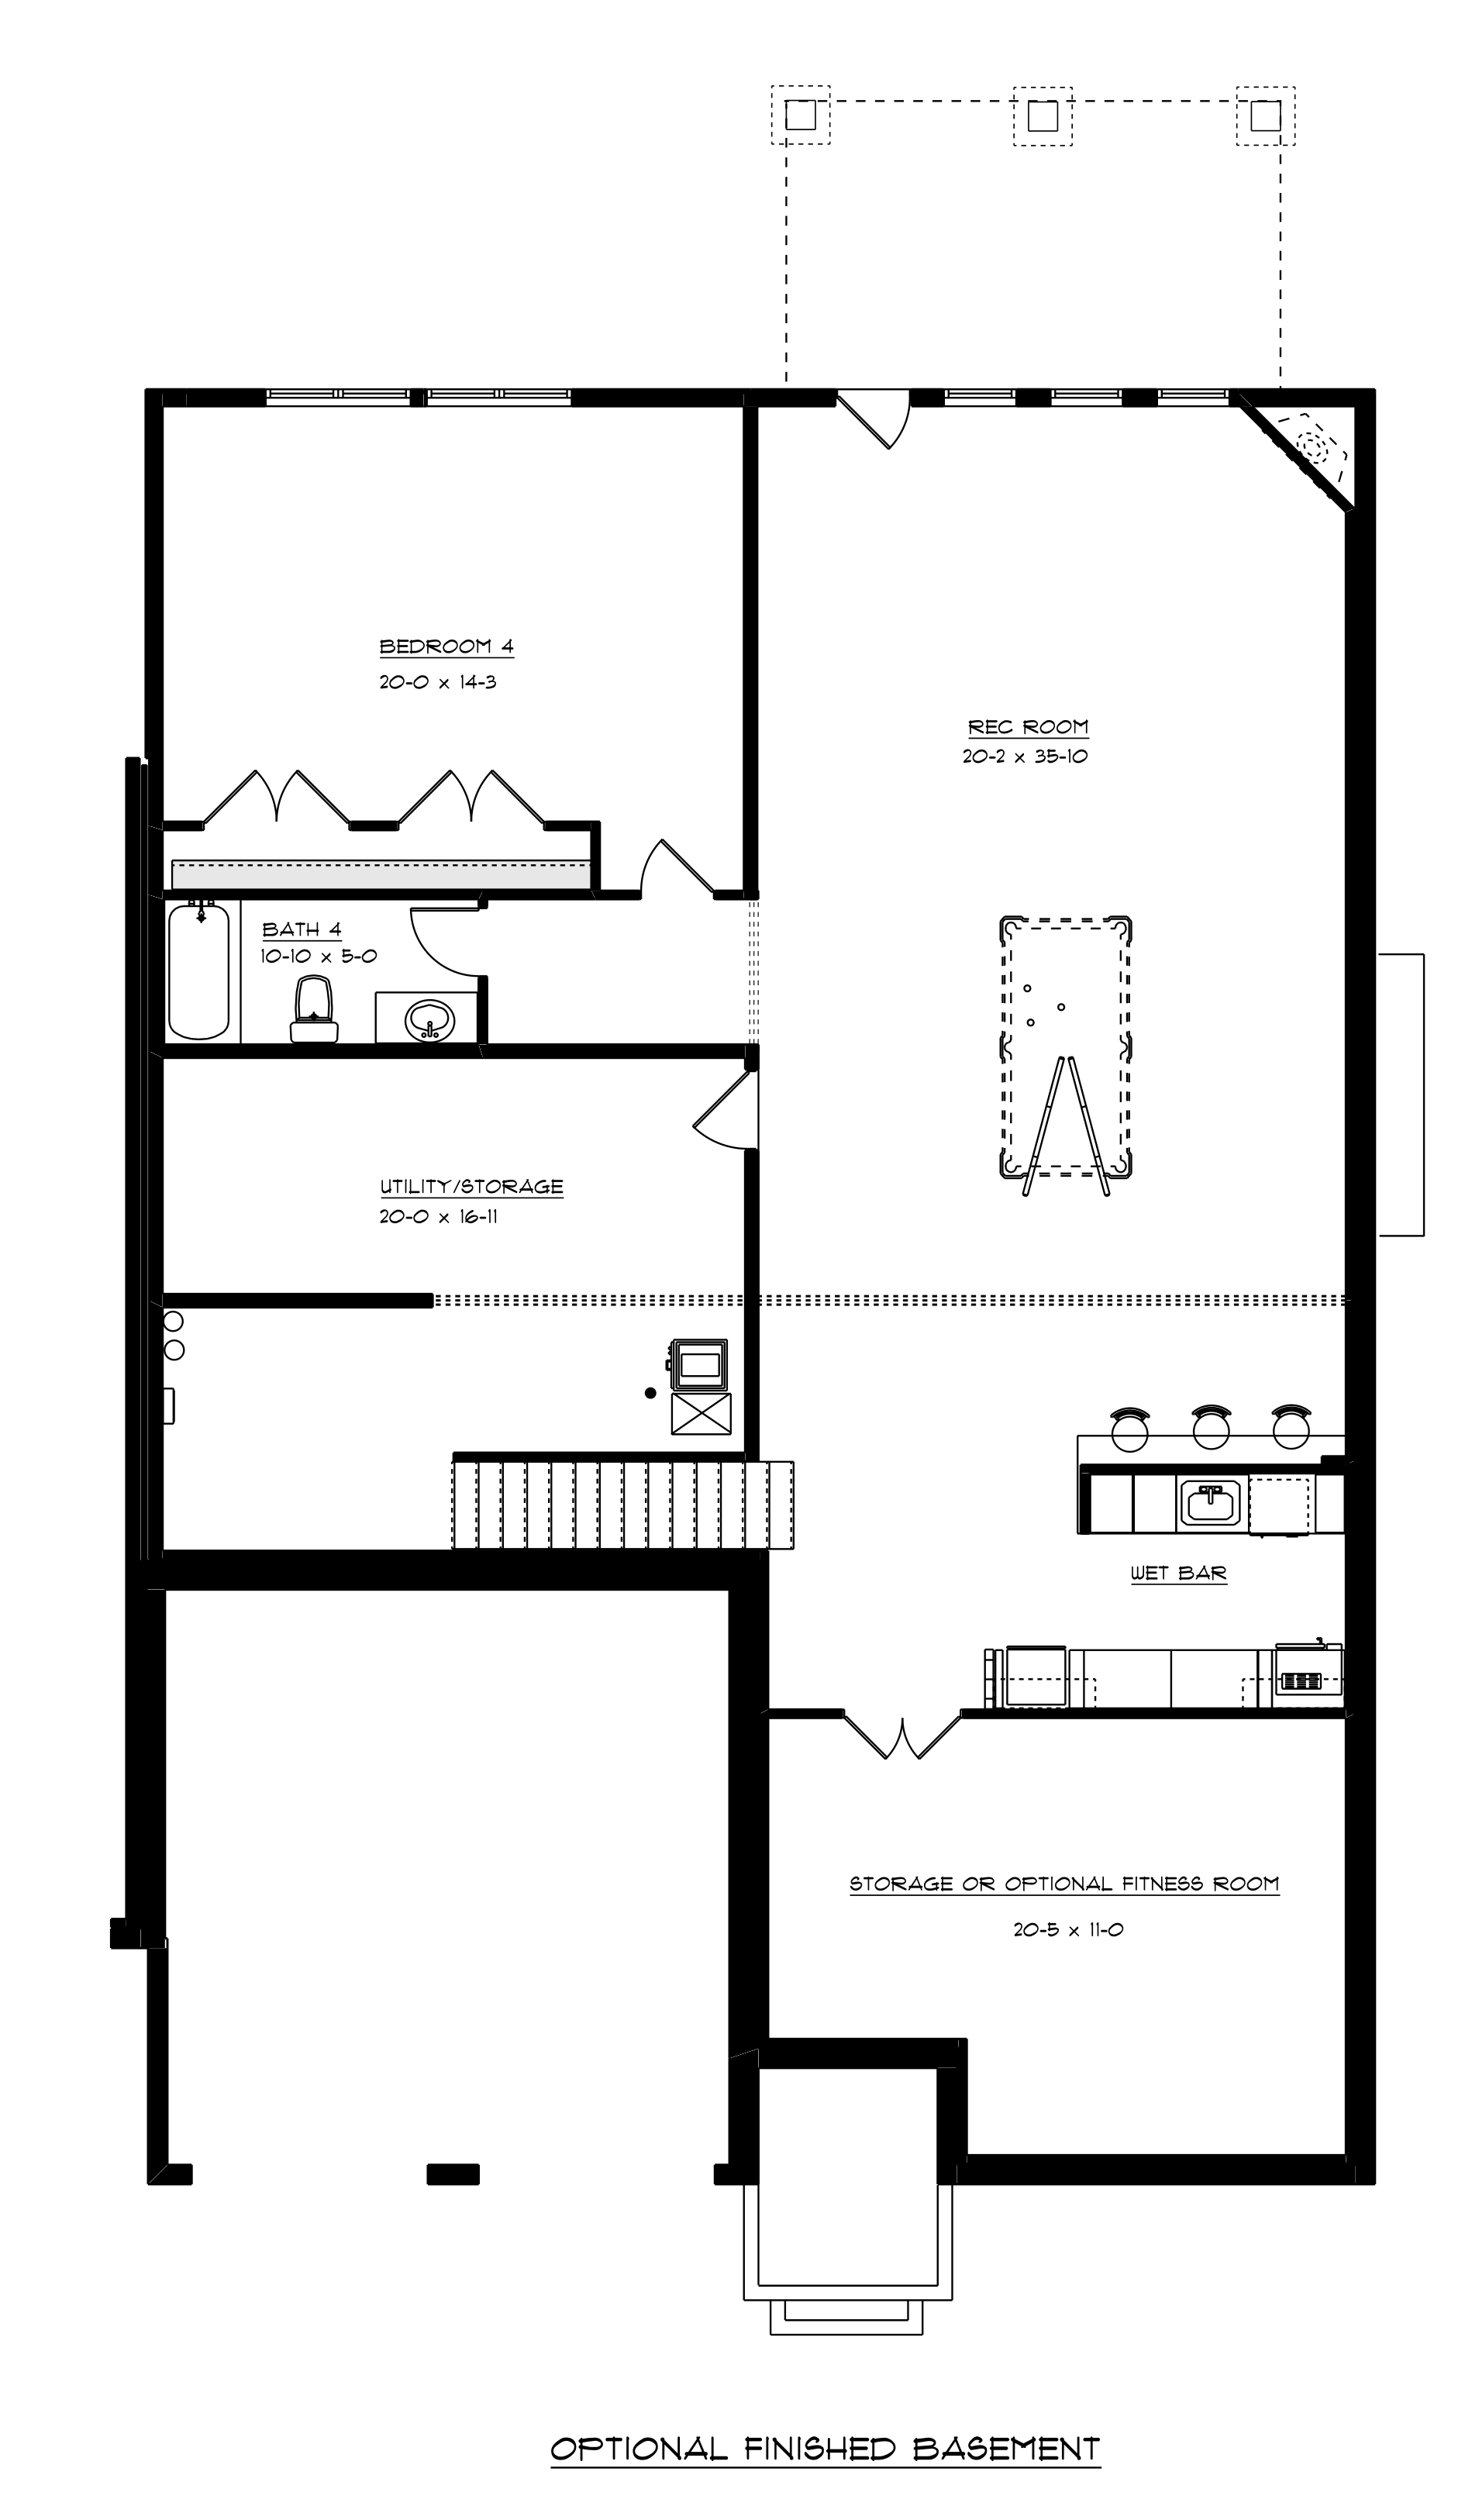 Greenside finished basement plan